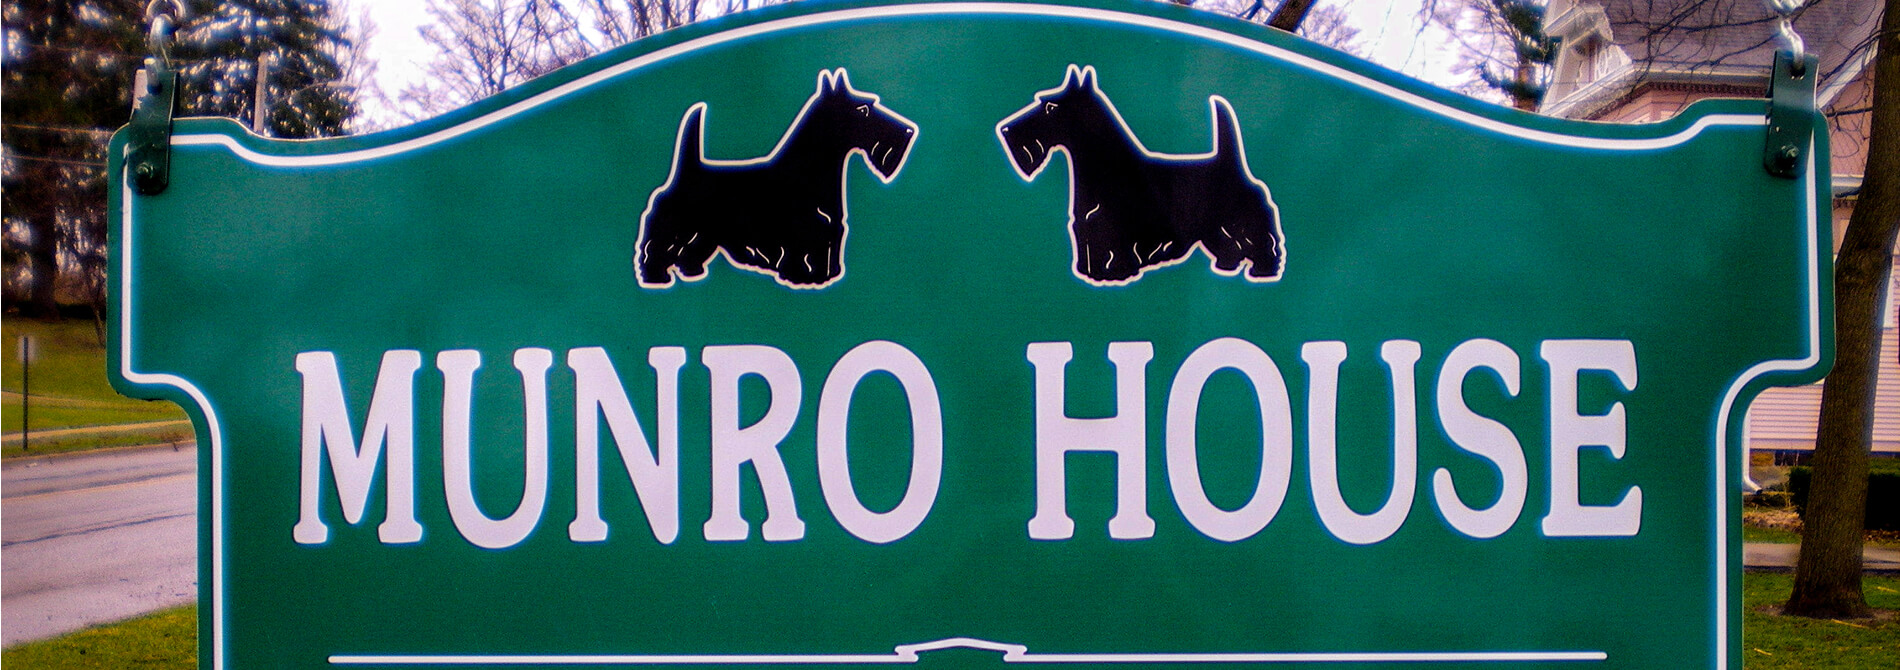 munro house green business sign with white lettering and two black scottish terrier dogs